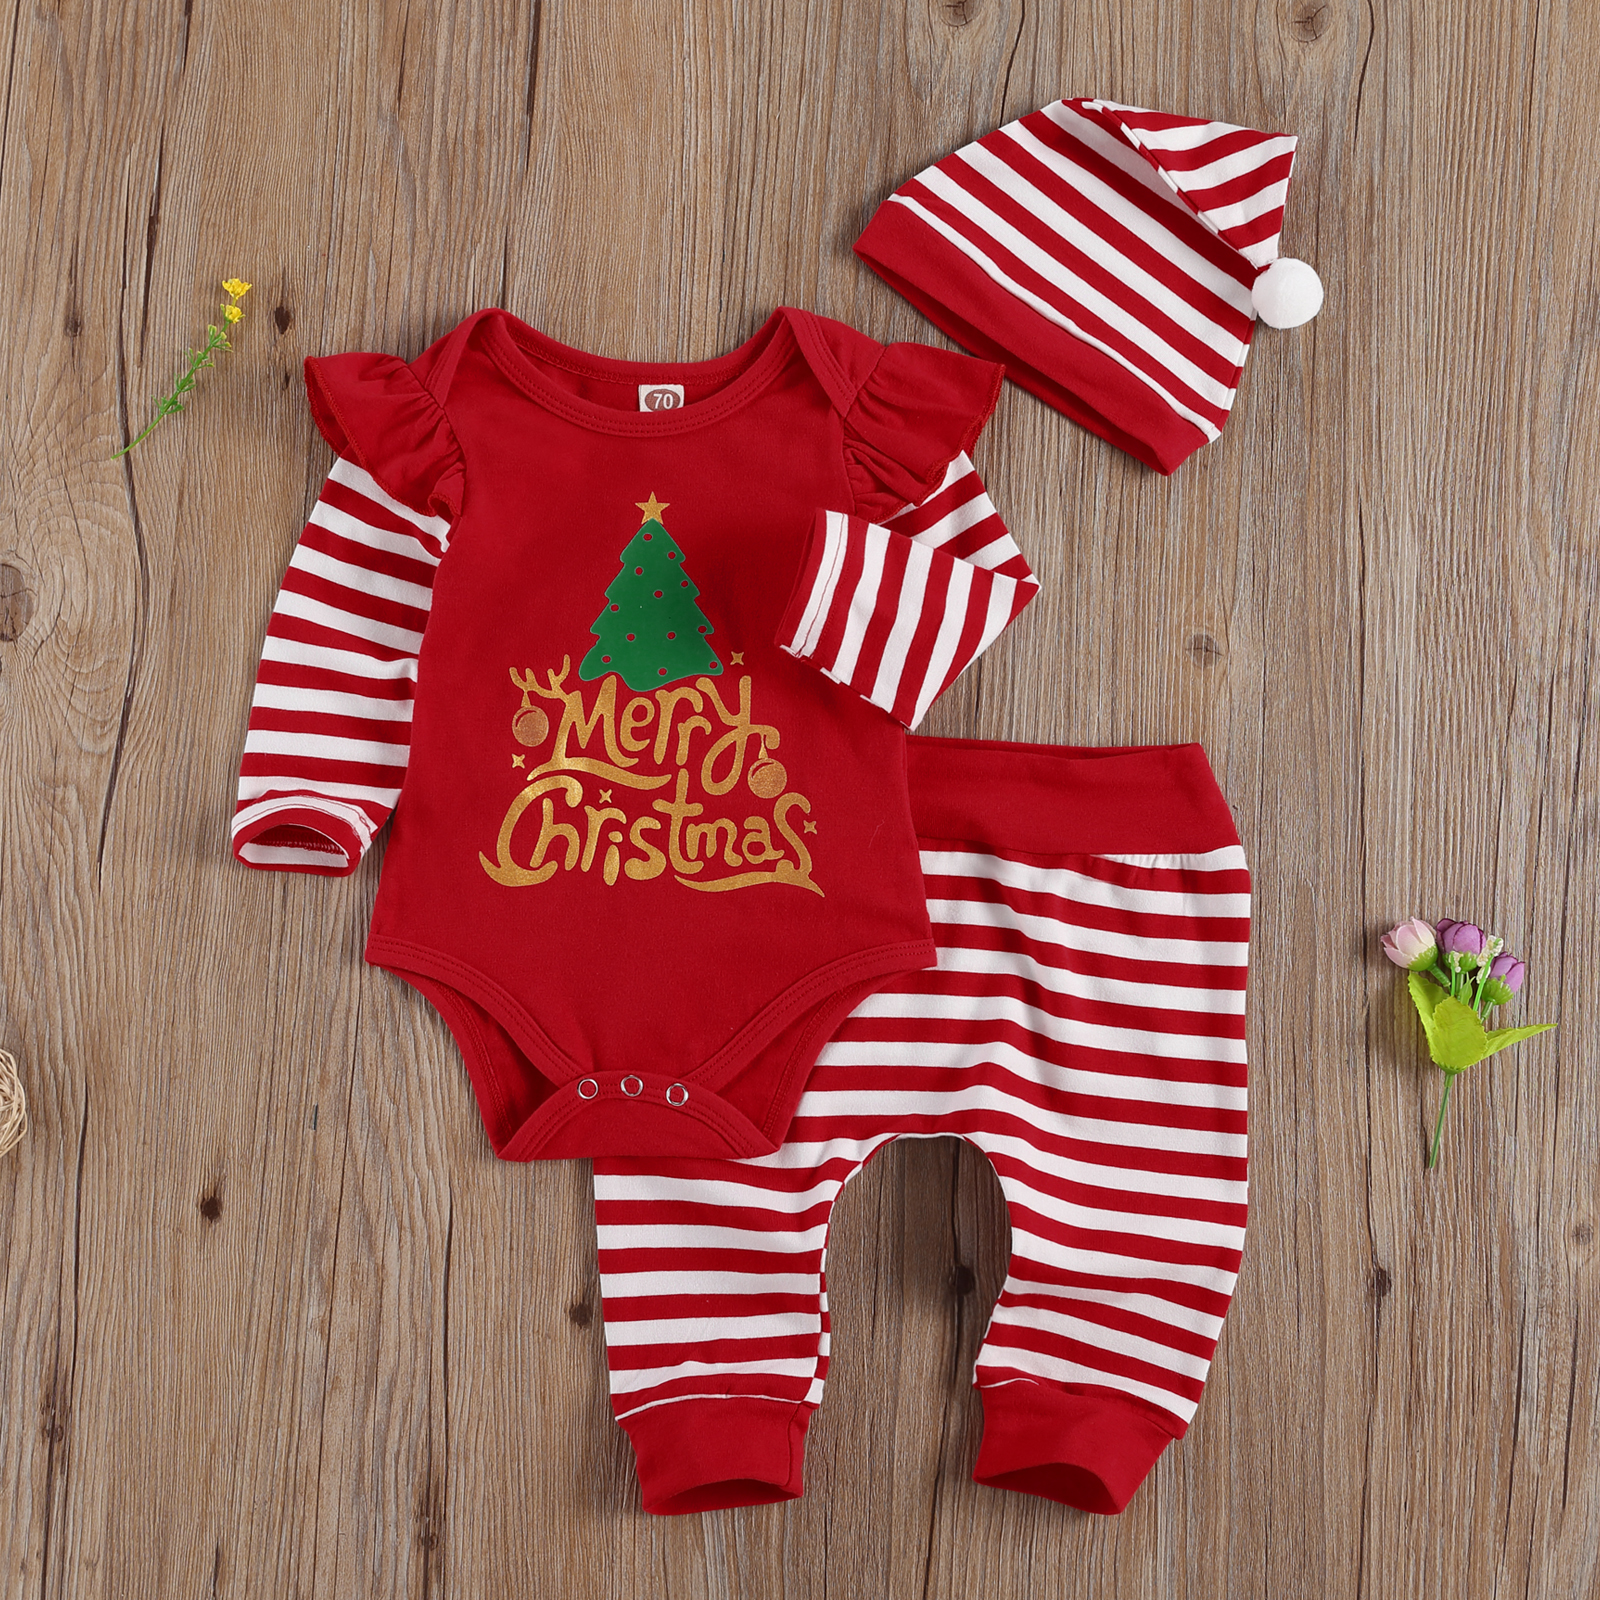 2020 New Autumn Christmas Long Sleeve Romper Set, Letters and Plaid Christmas Tree Print Plaid Printed Pants and Christmas Hat